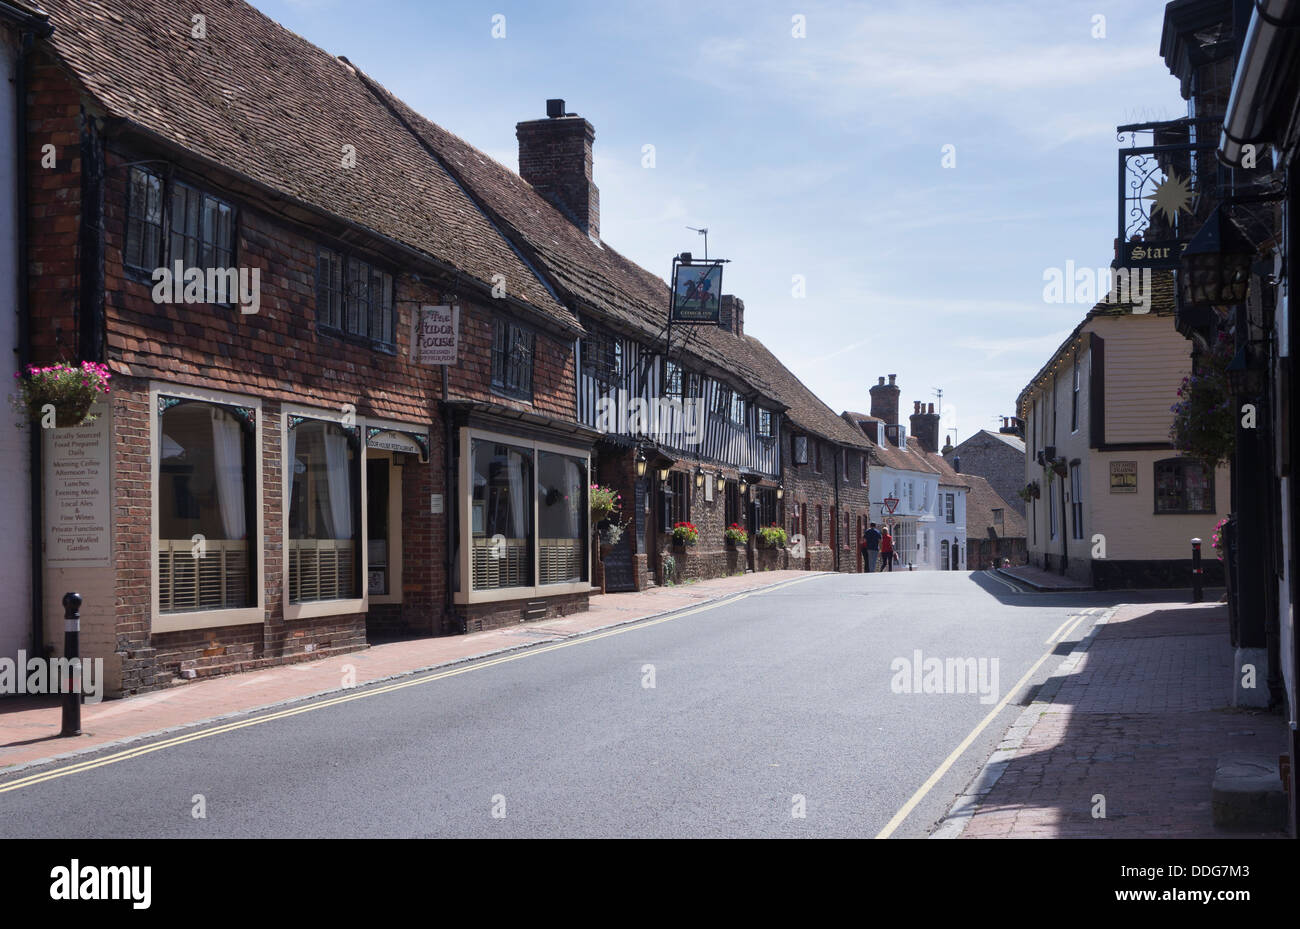 Tearooms and pubs on Alfriston village high street in East Sussex, England, UK - Stock Image